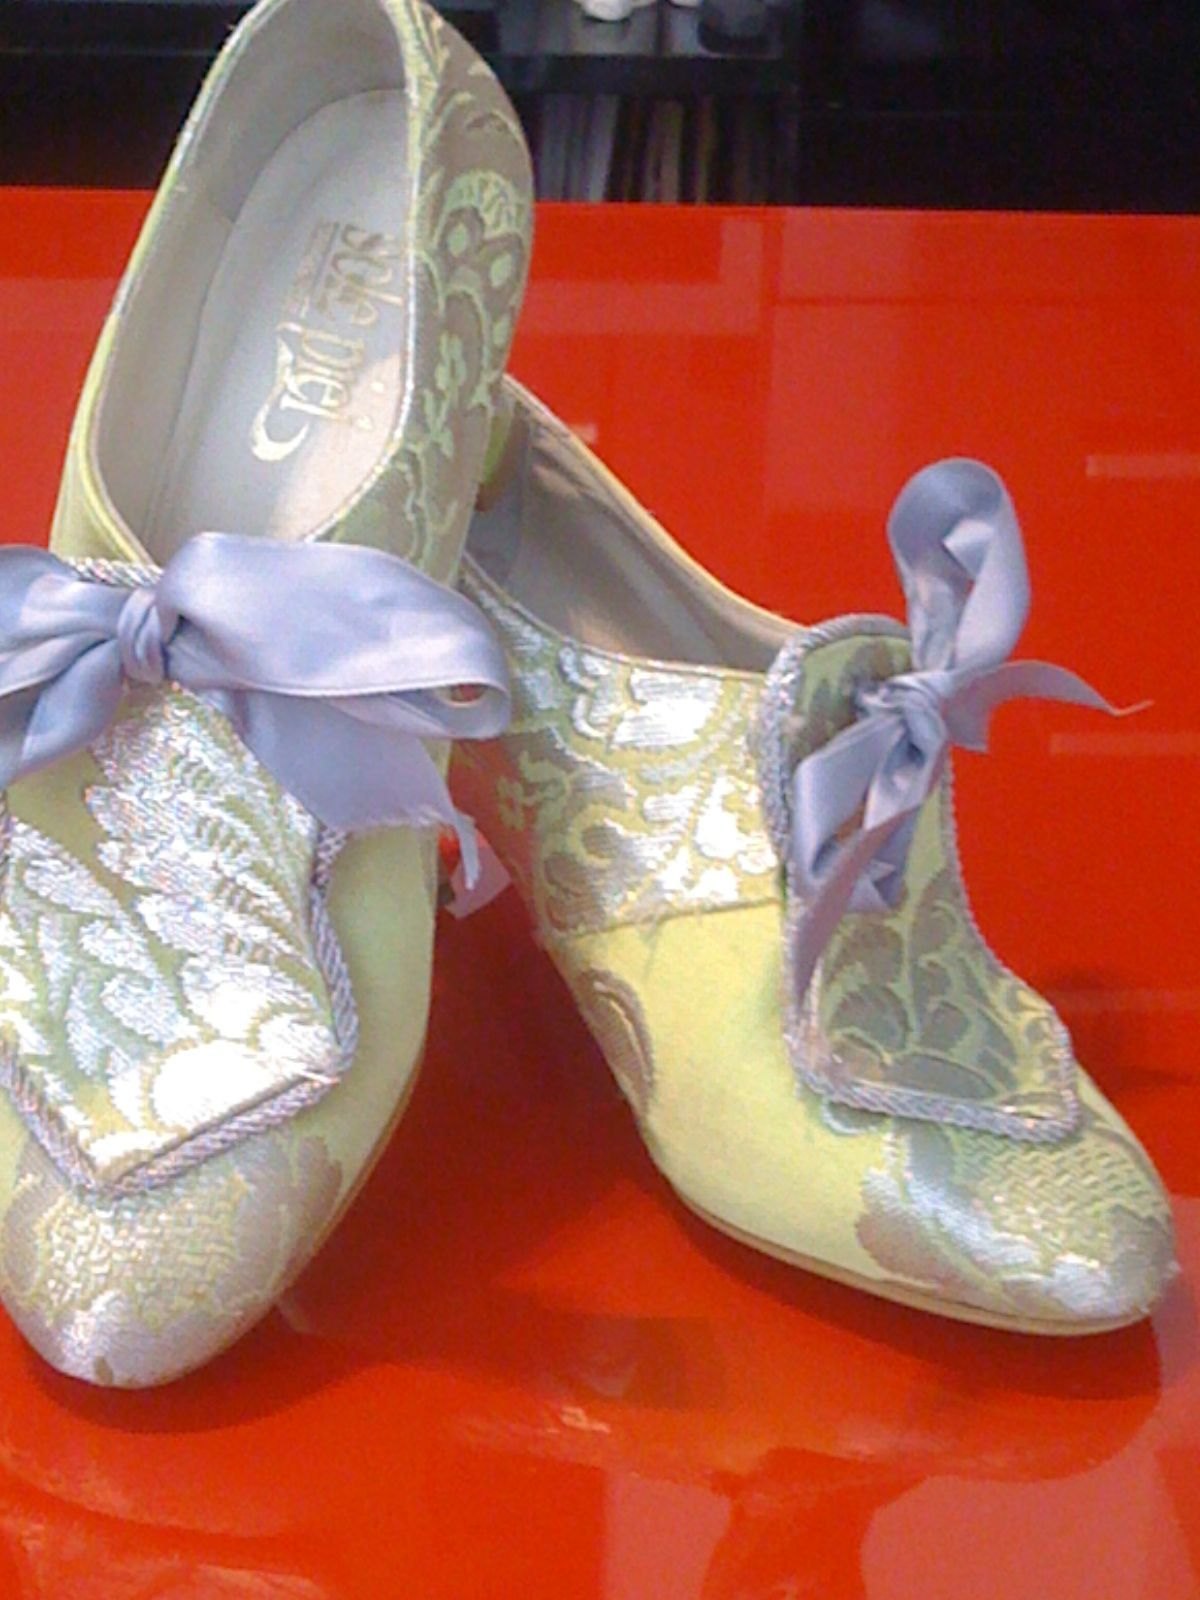 Ernesto shoes Yeslin a pair of the beautiful fallera shoes, during their interview.